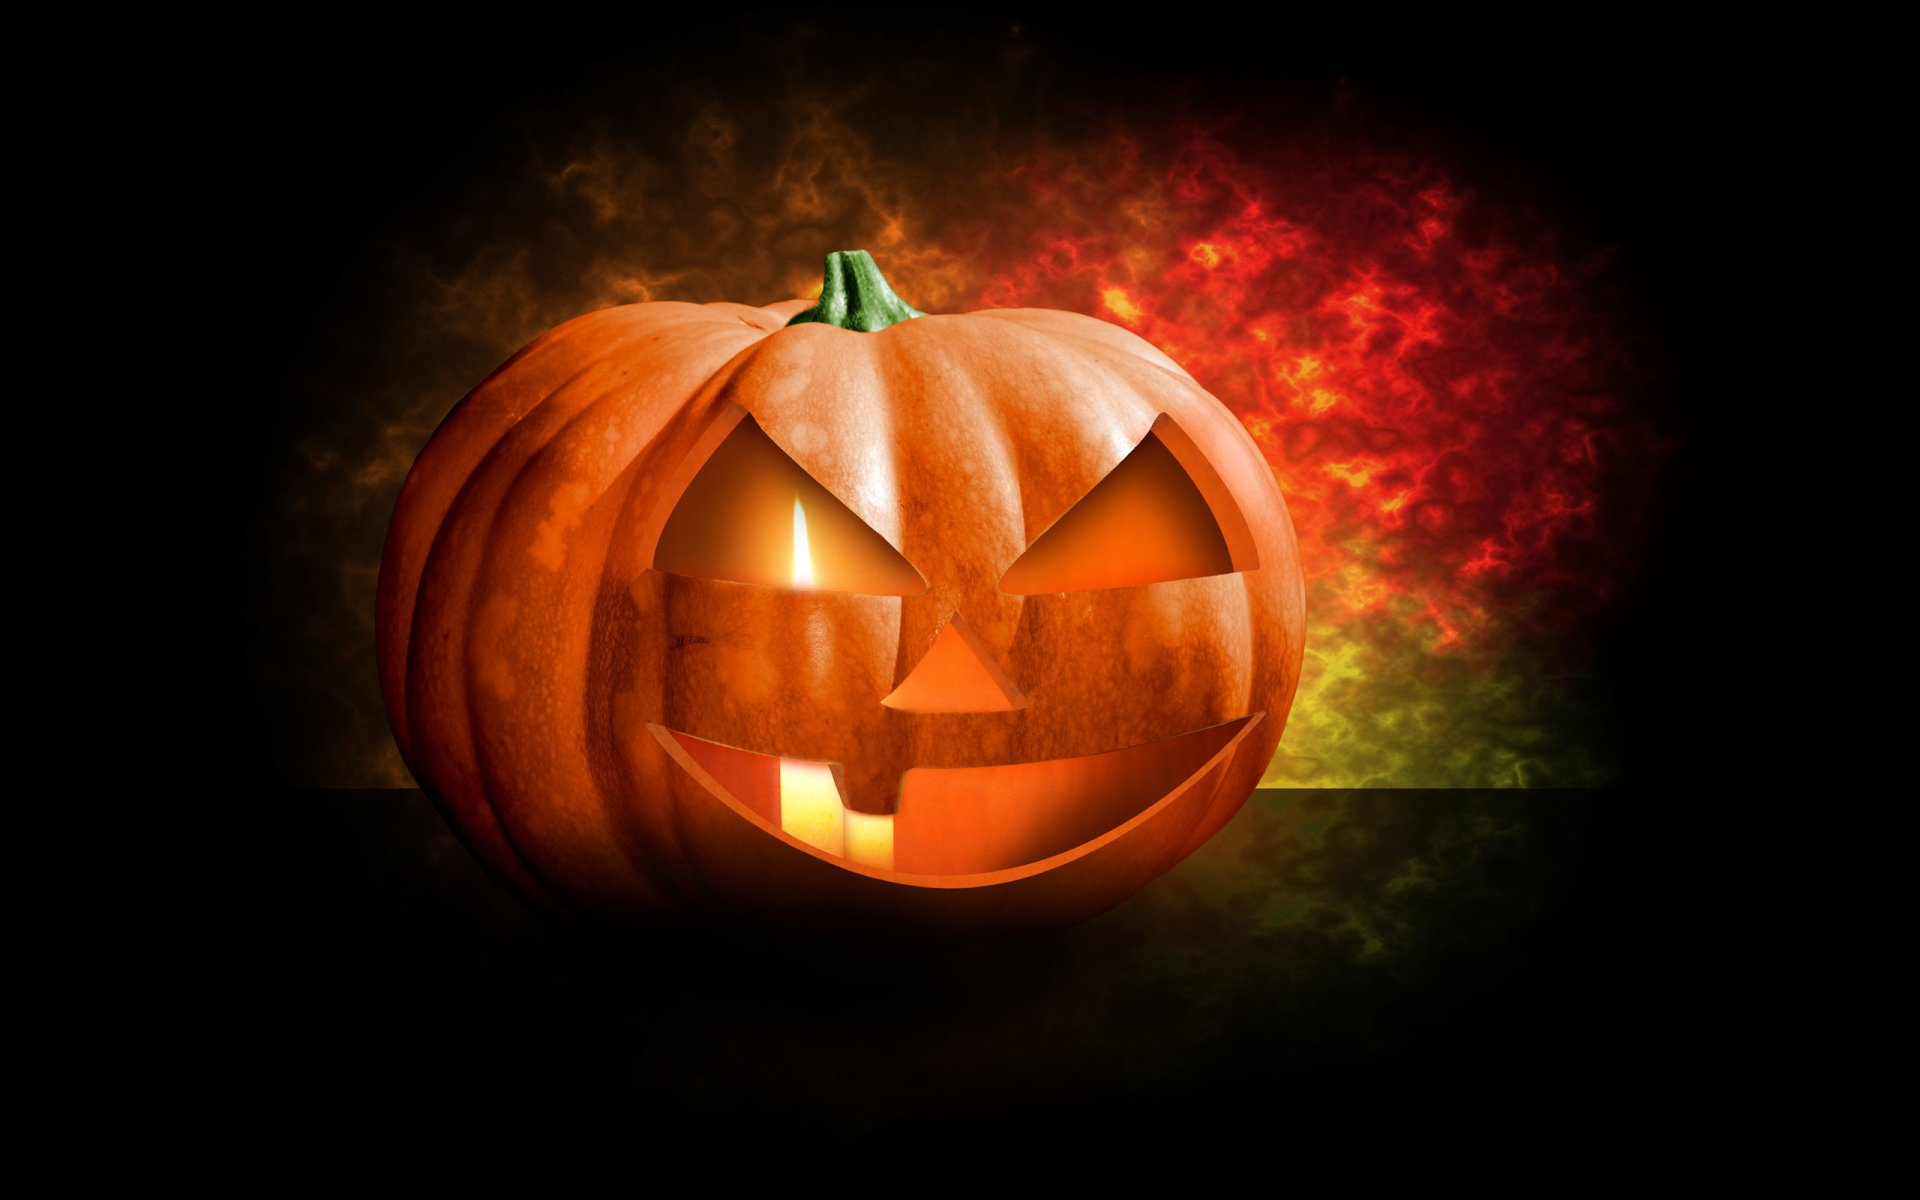 Holiday - Halloween  Jack-o'-lantern Pumpkin Wallpaper